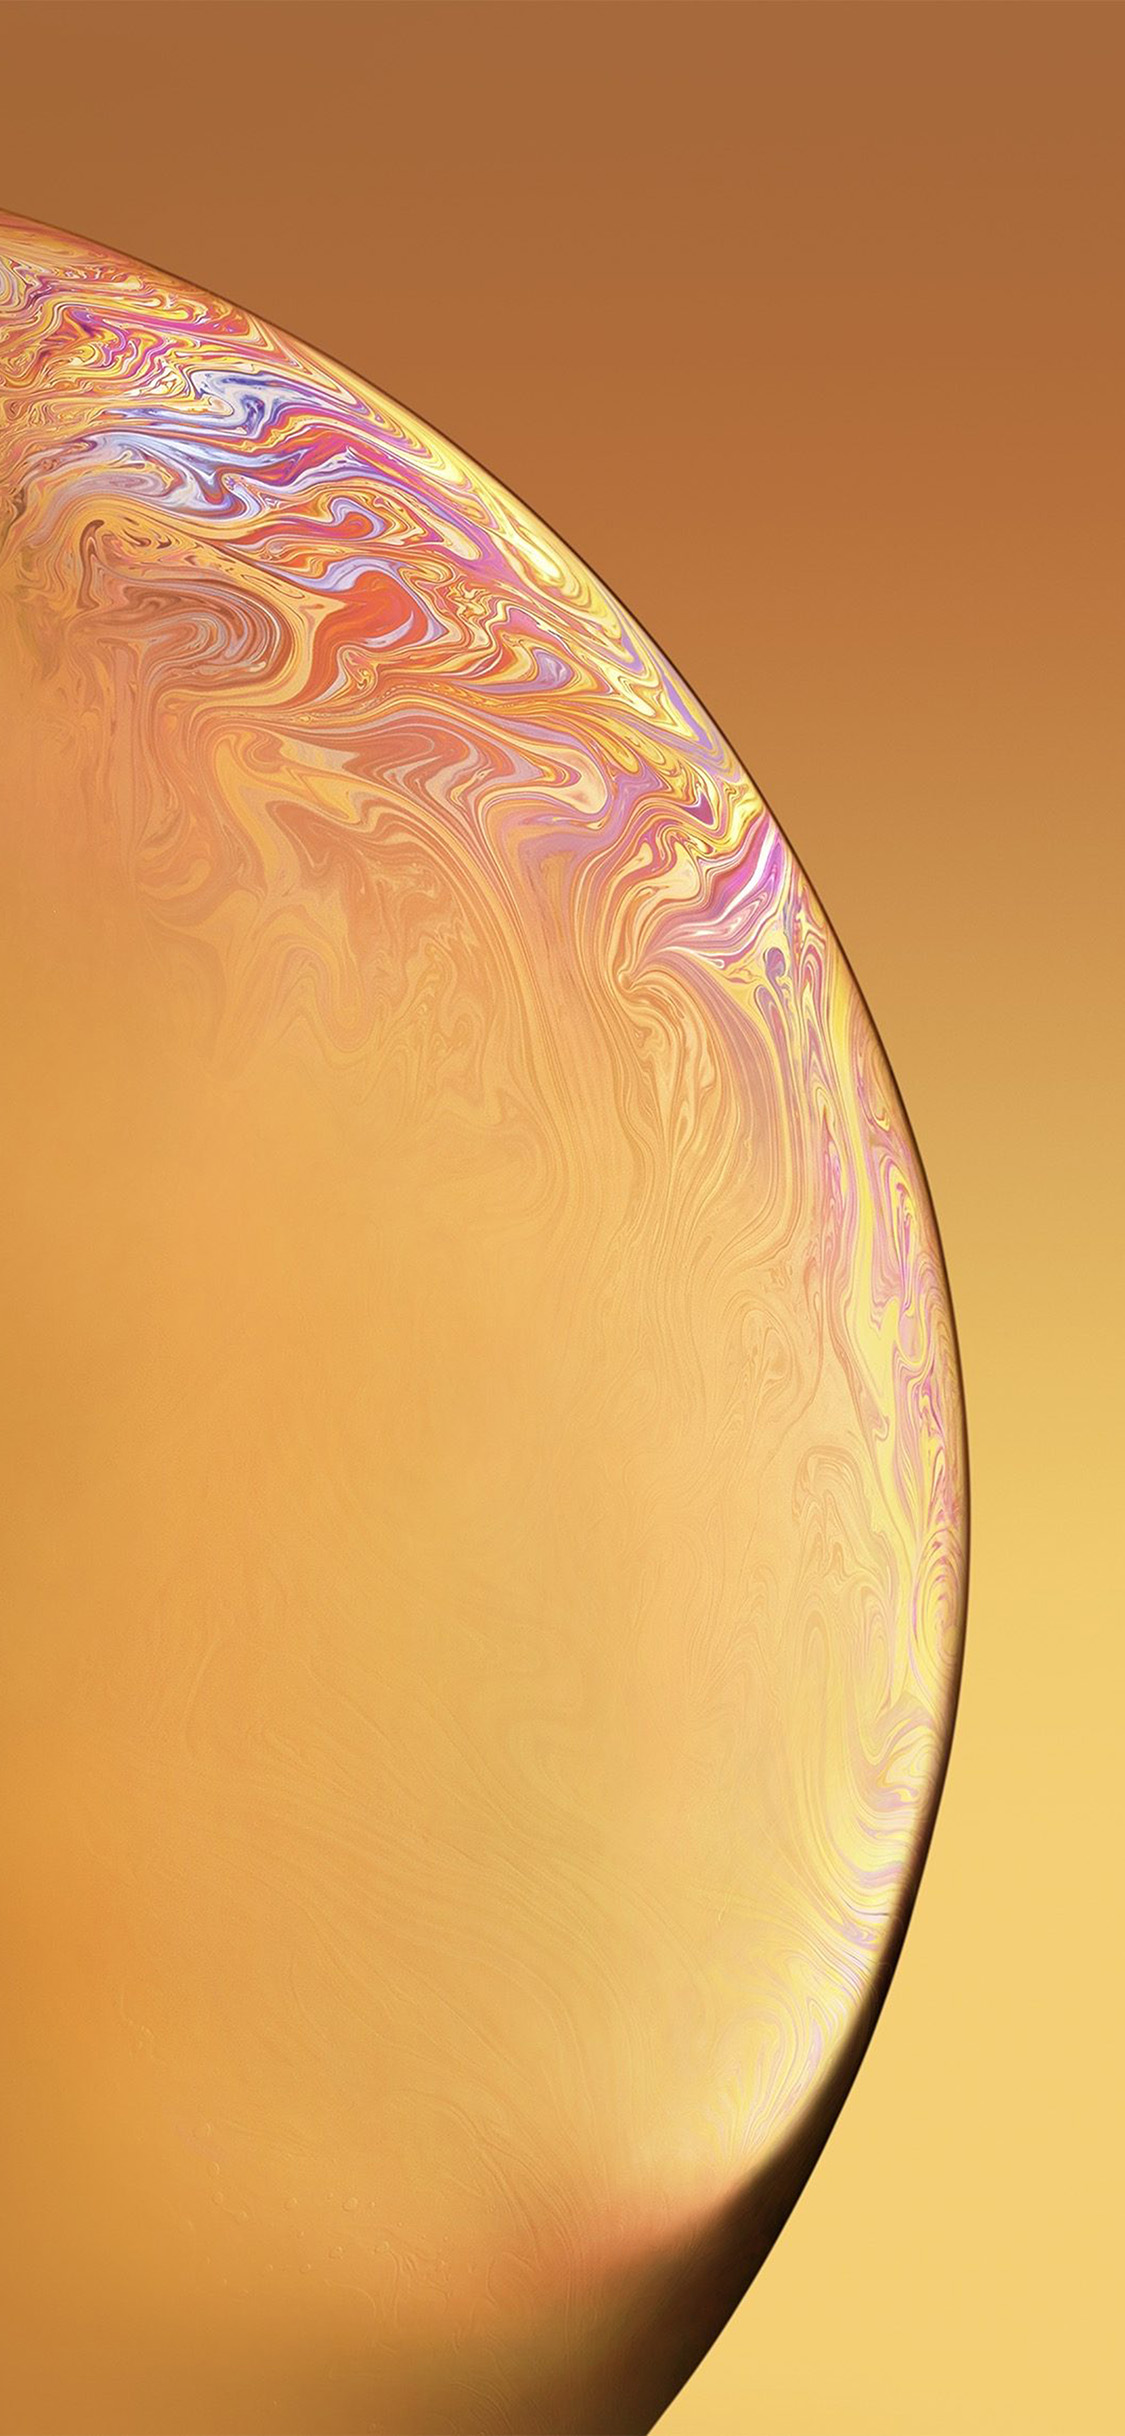 iPhonexpapers.com-Apple-iPhone-wallpaper-bg41-apple-iphone-xs-space-official-art-yellow-bubble